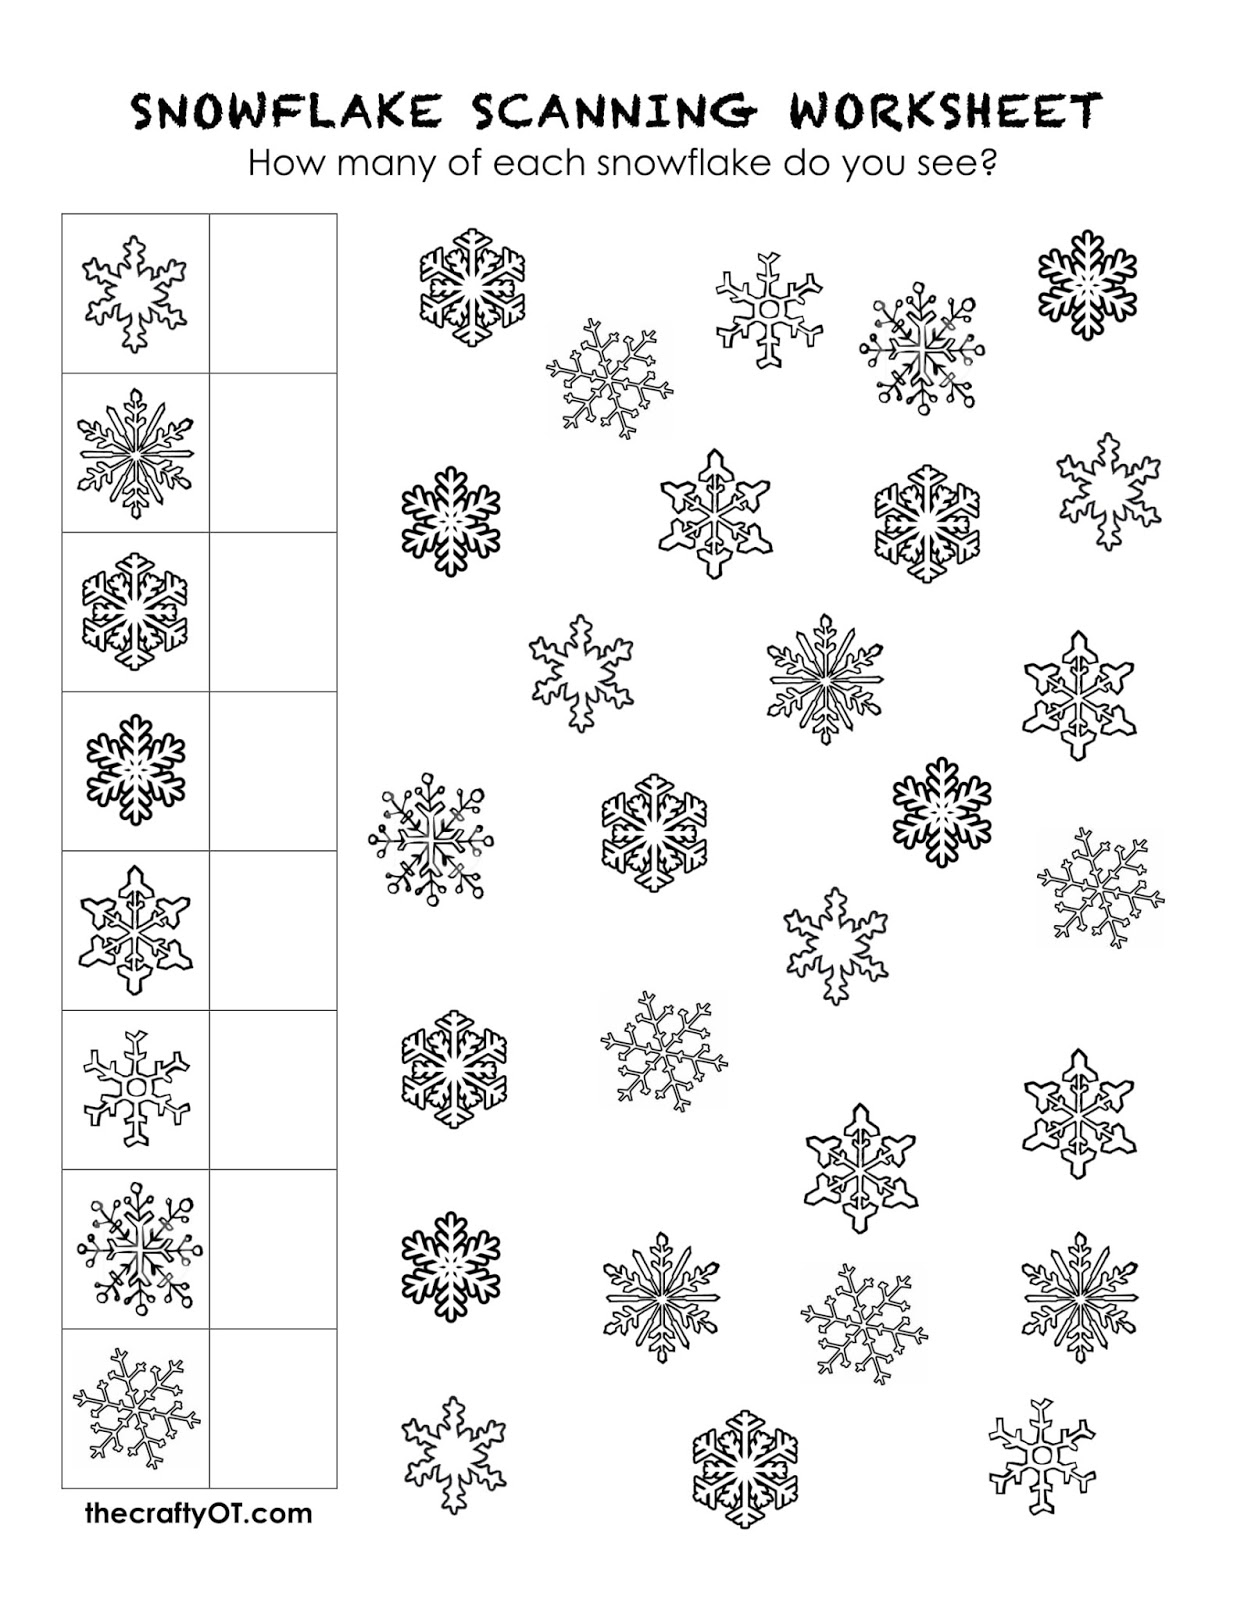 Worksheets Visual Discrimination Worksheets the crafty ot free winter worksheets works on visual scanning perception and discrimination skills